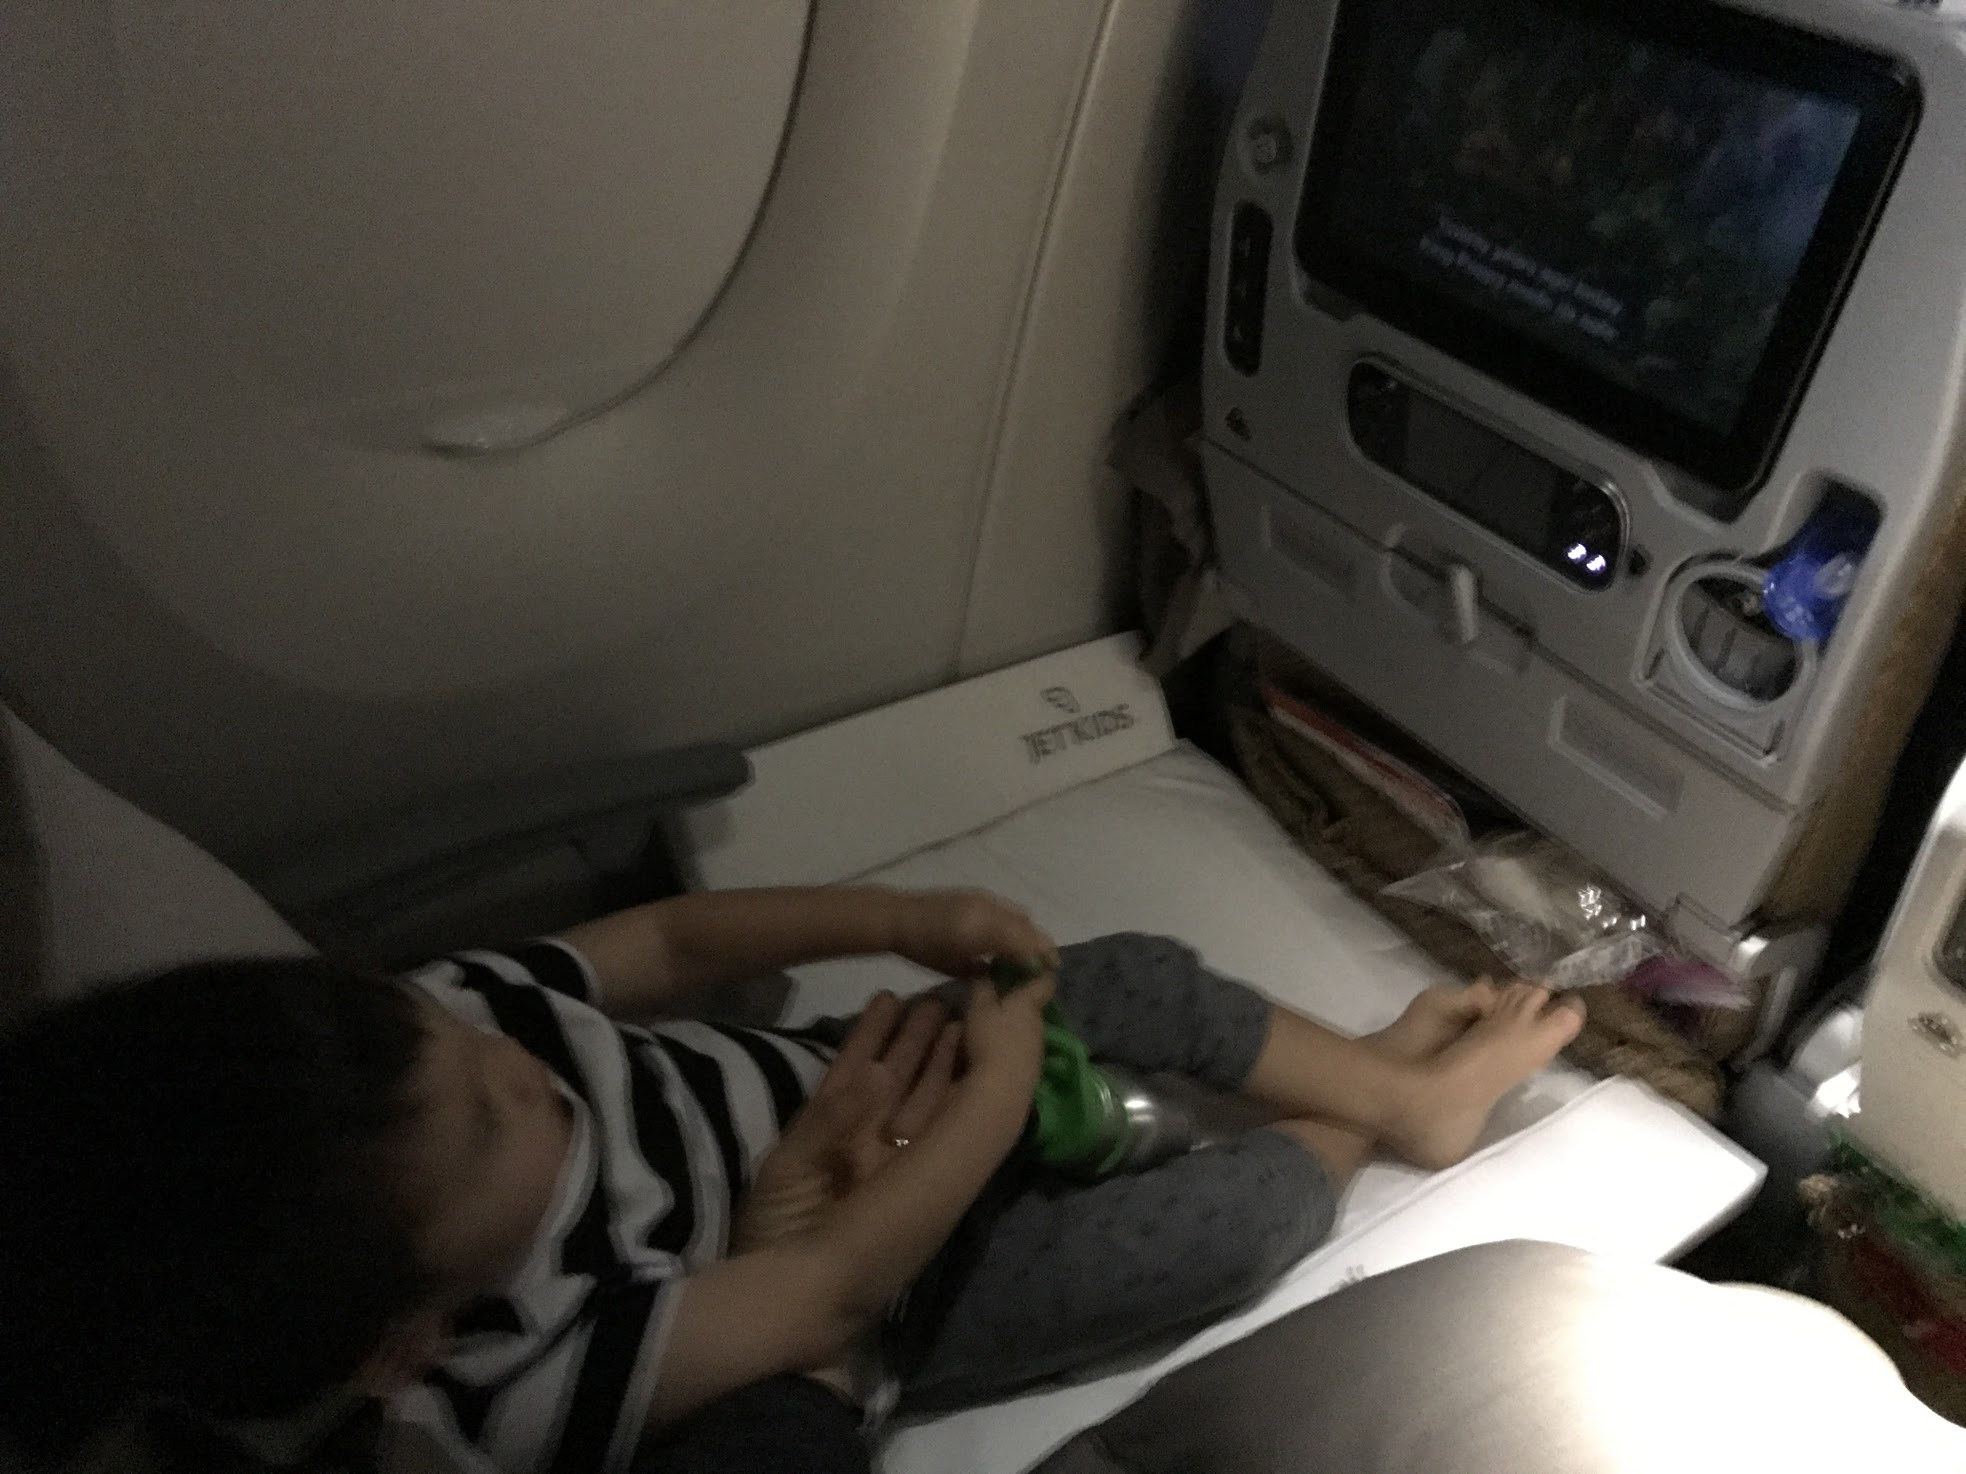 """The Stokke JetKids Bed Box - We got this once my daughter was old enough to wheel herself around. It meant we moved quicker around the terminal and it converted to a """"poor man business class� for our 2yo in economy class. Brilliant design! It's $199 on Amazon, not cheap, but considering we do this flight often, it was a great business class upgrade."""